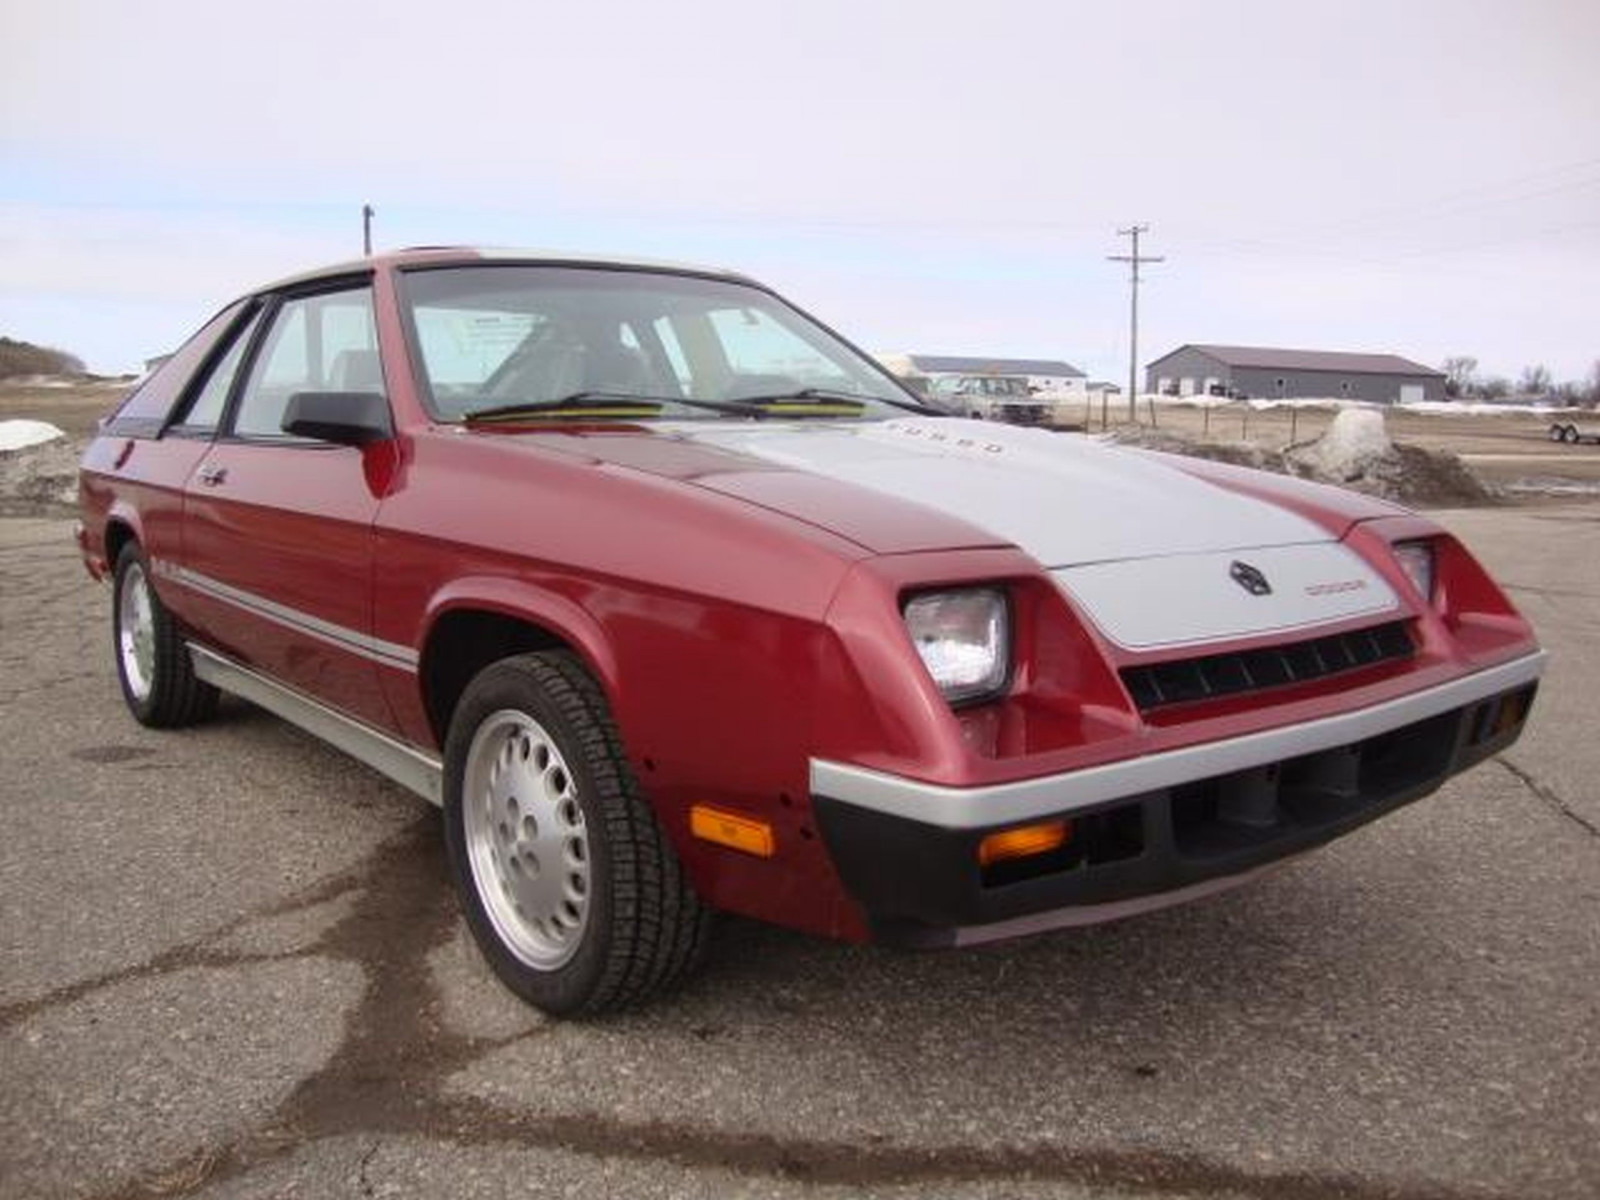 New 1987 Dodge Shelby Charger - Image 3